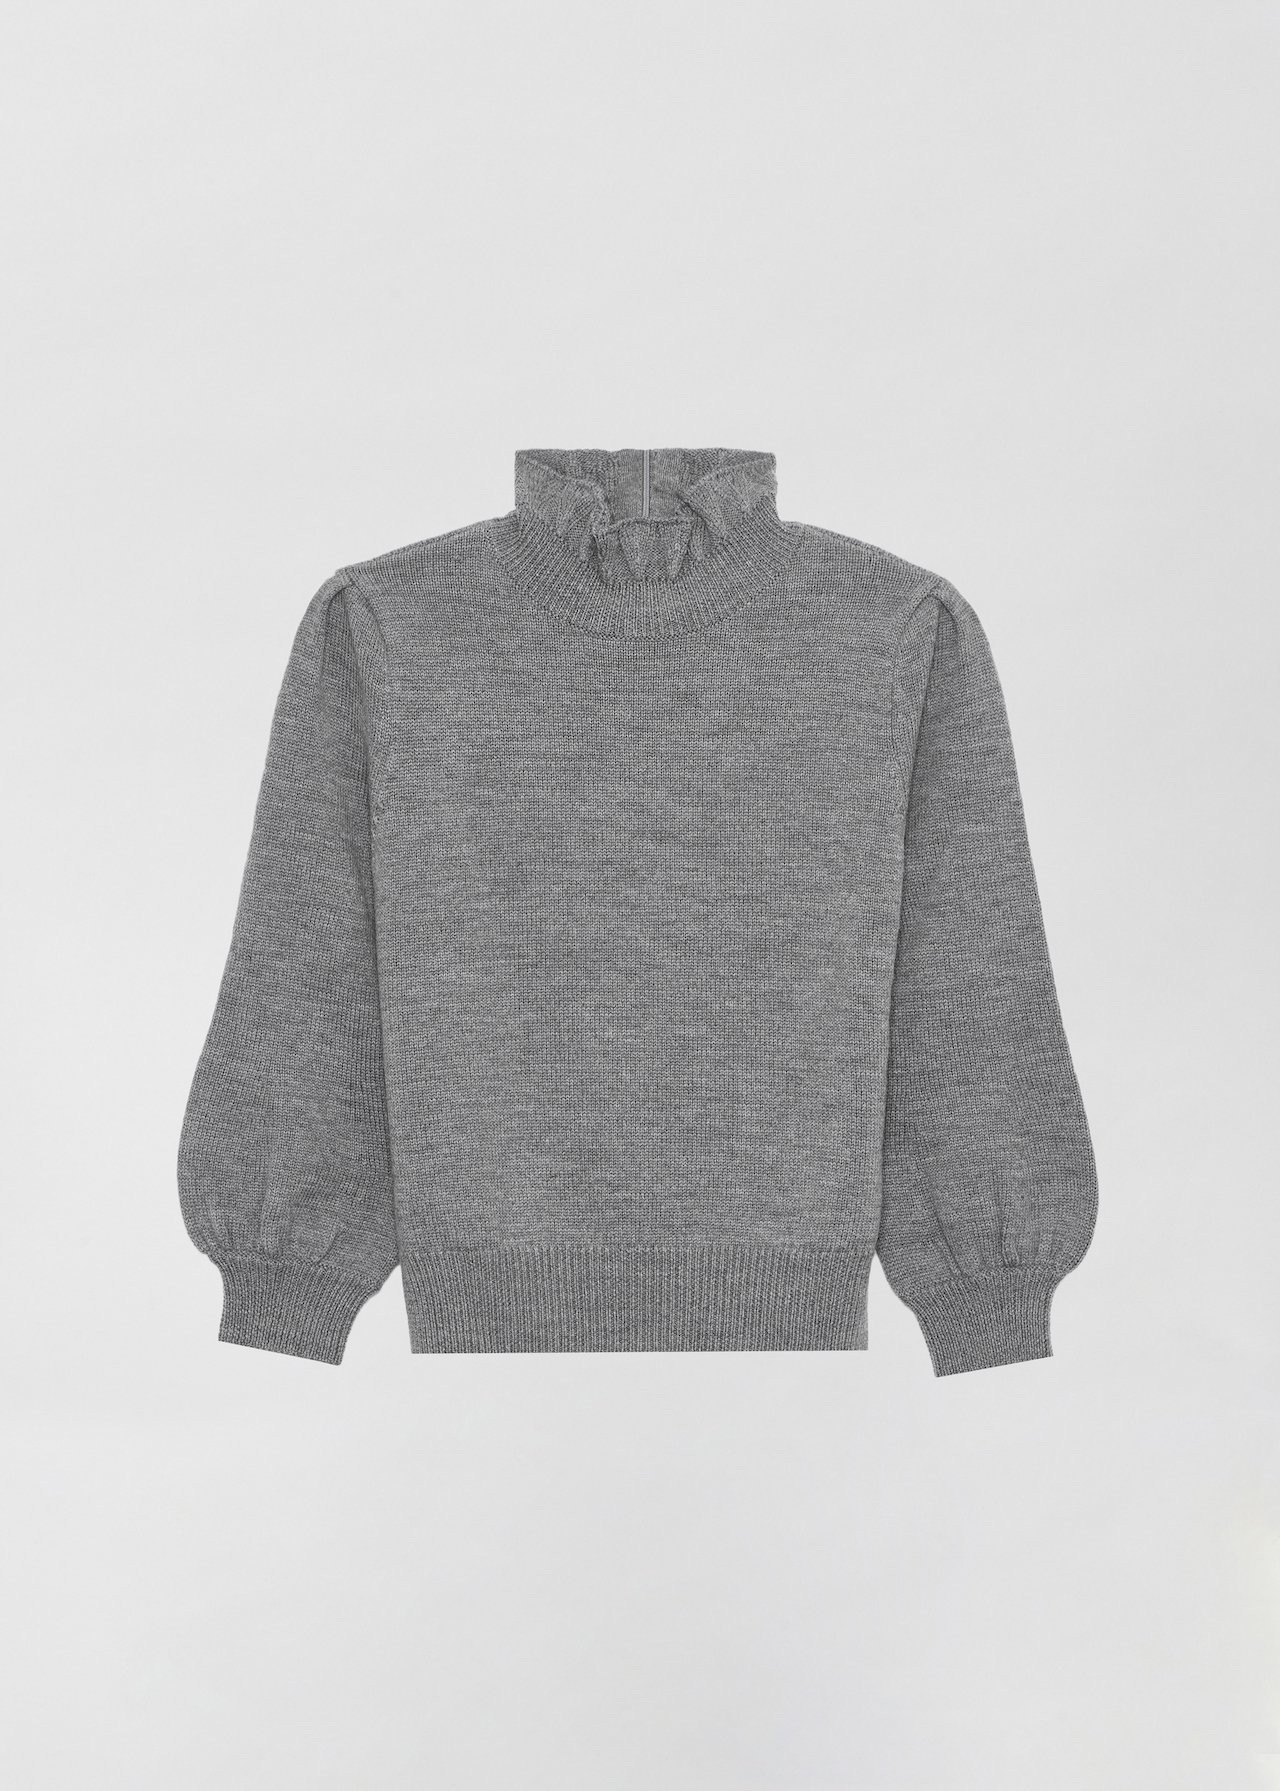 Ruffled Merino Wool Turtleneck - Navy in Grey by Co Collections